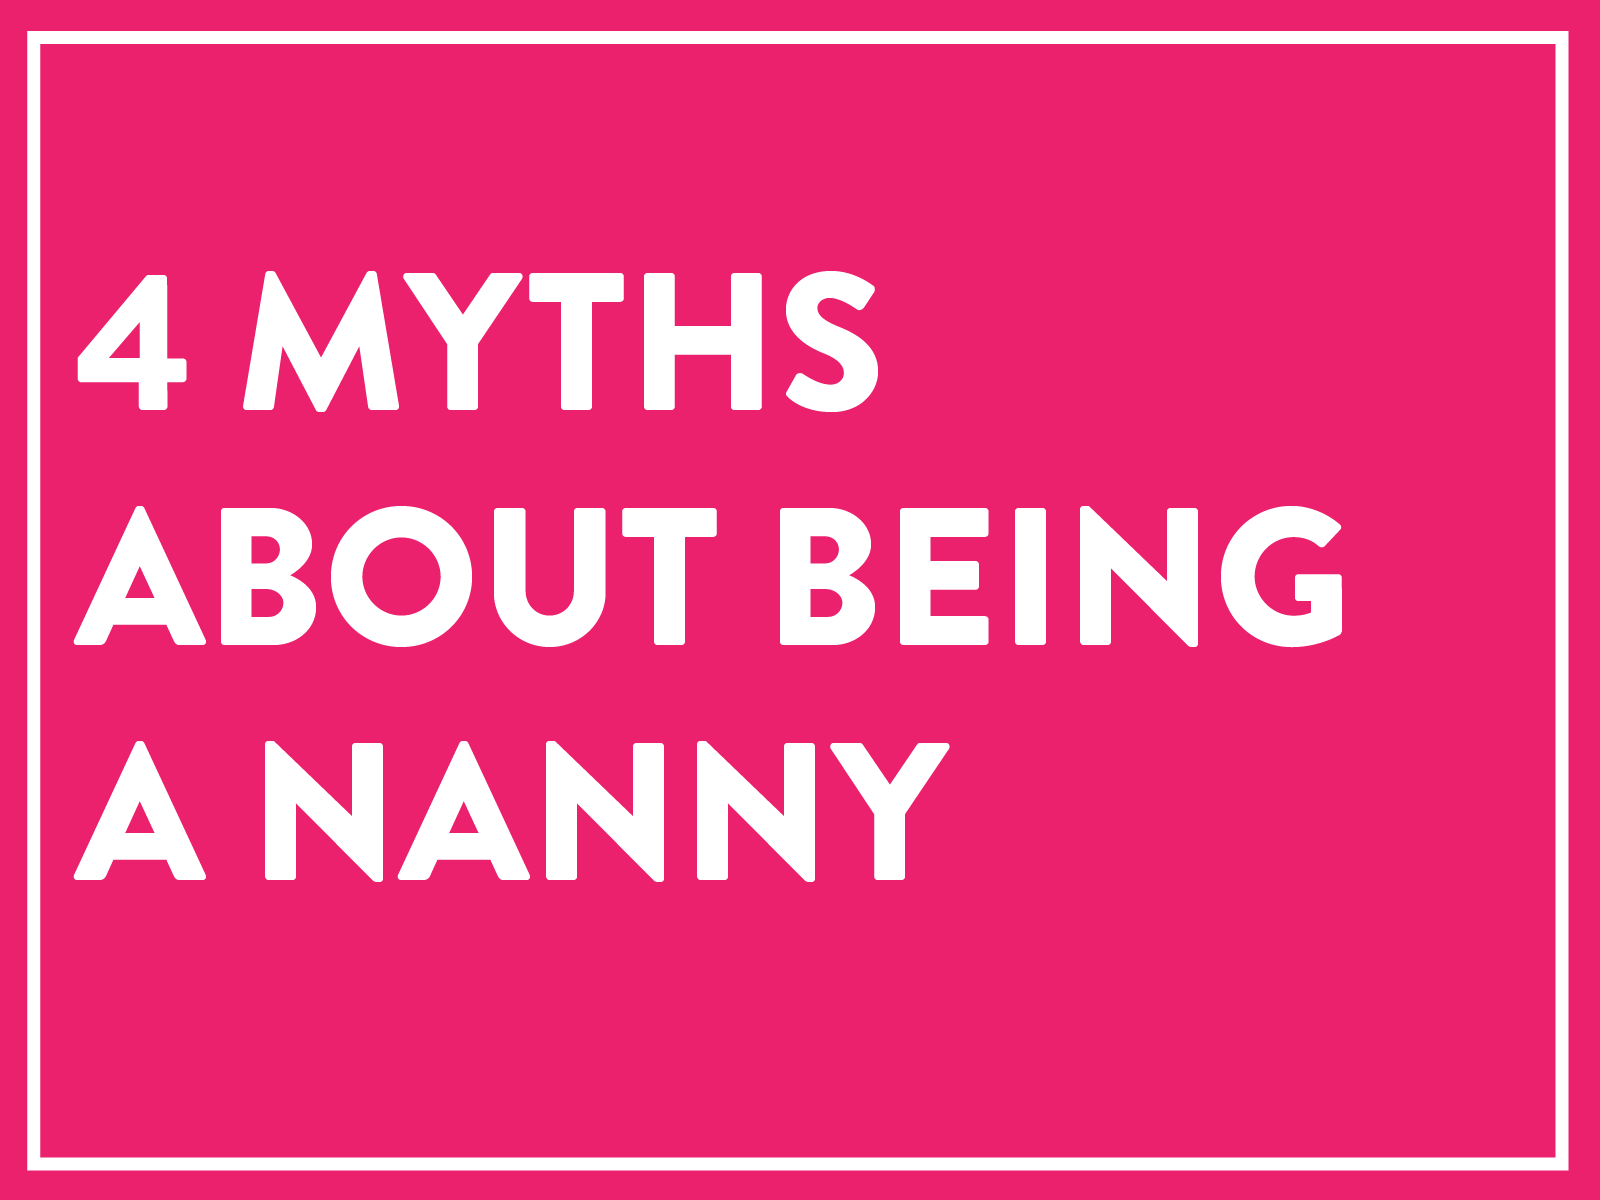 4 Myths about being a nanny